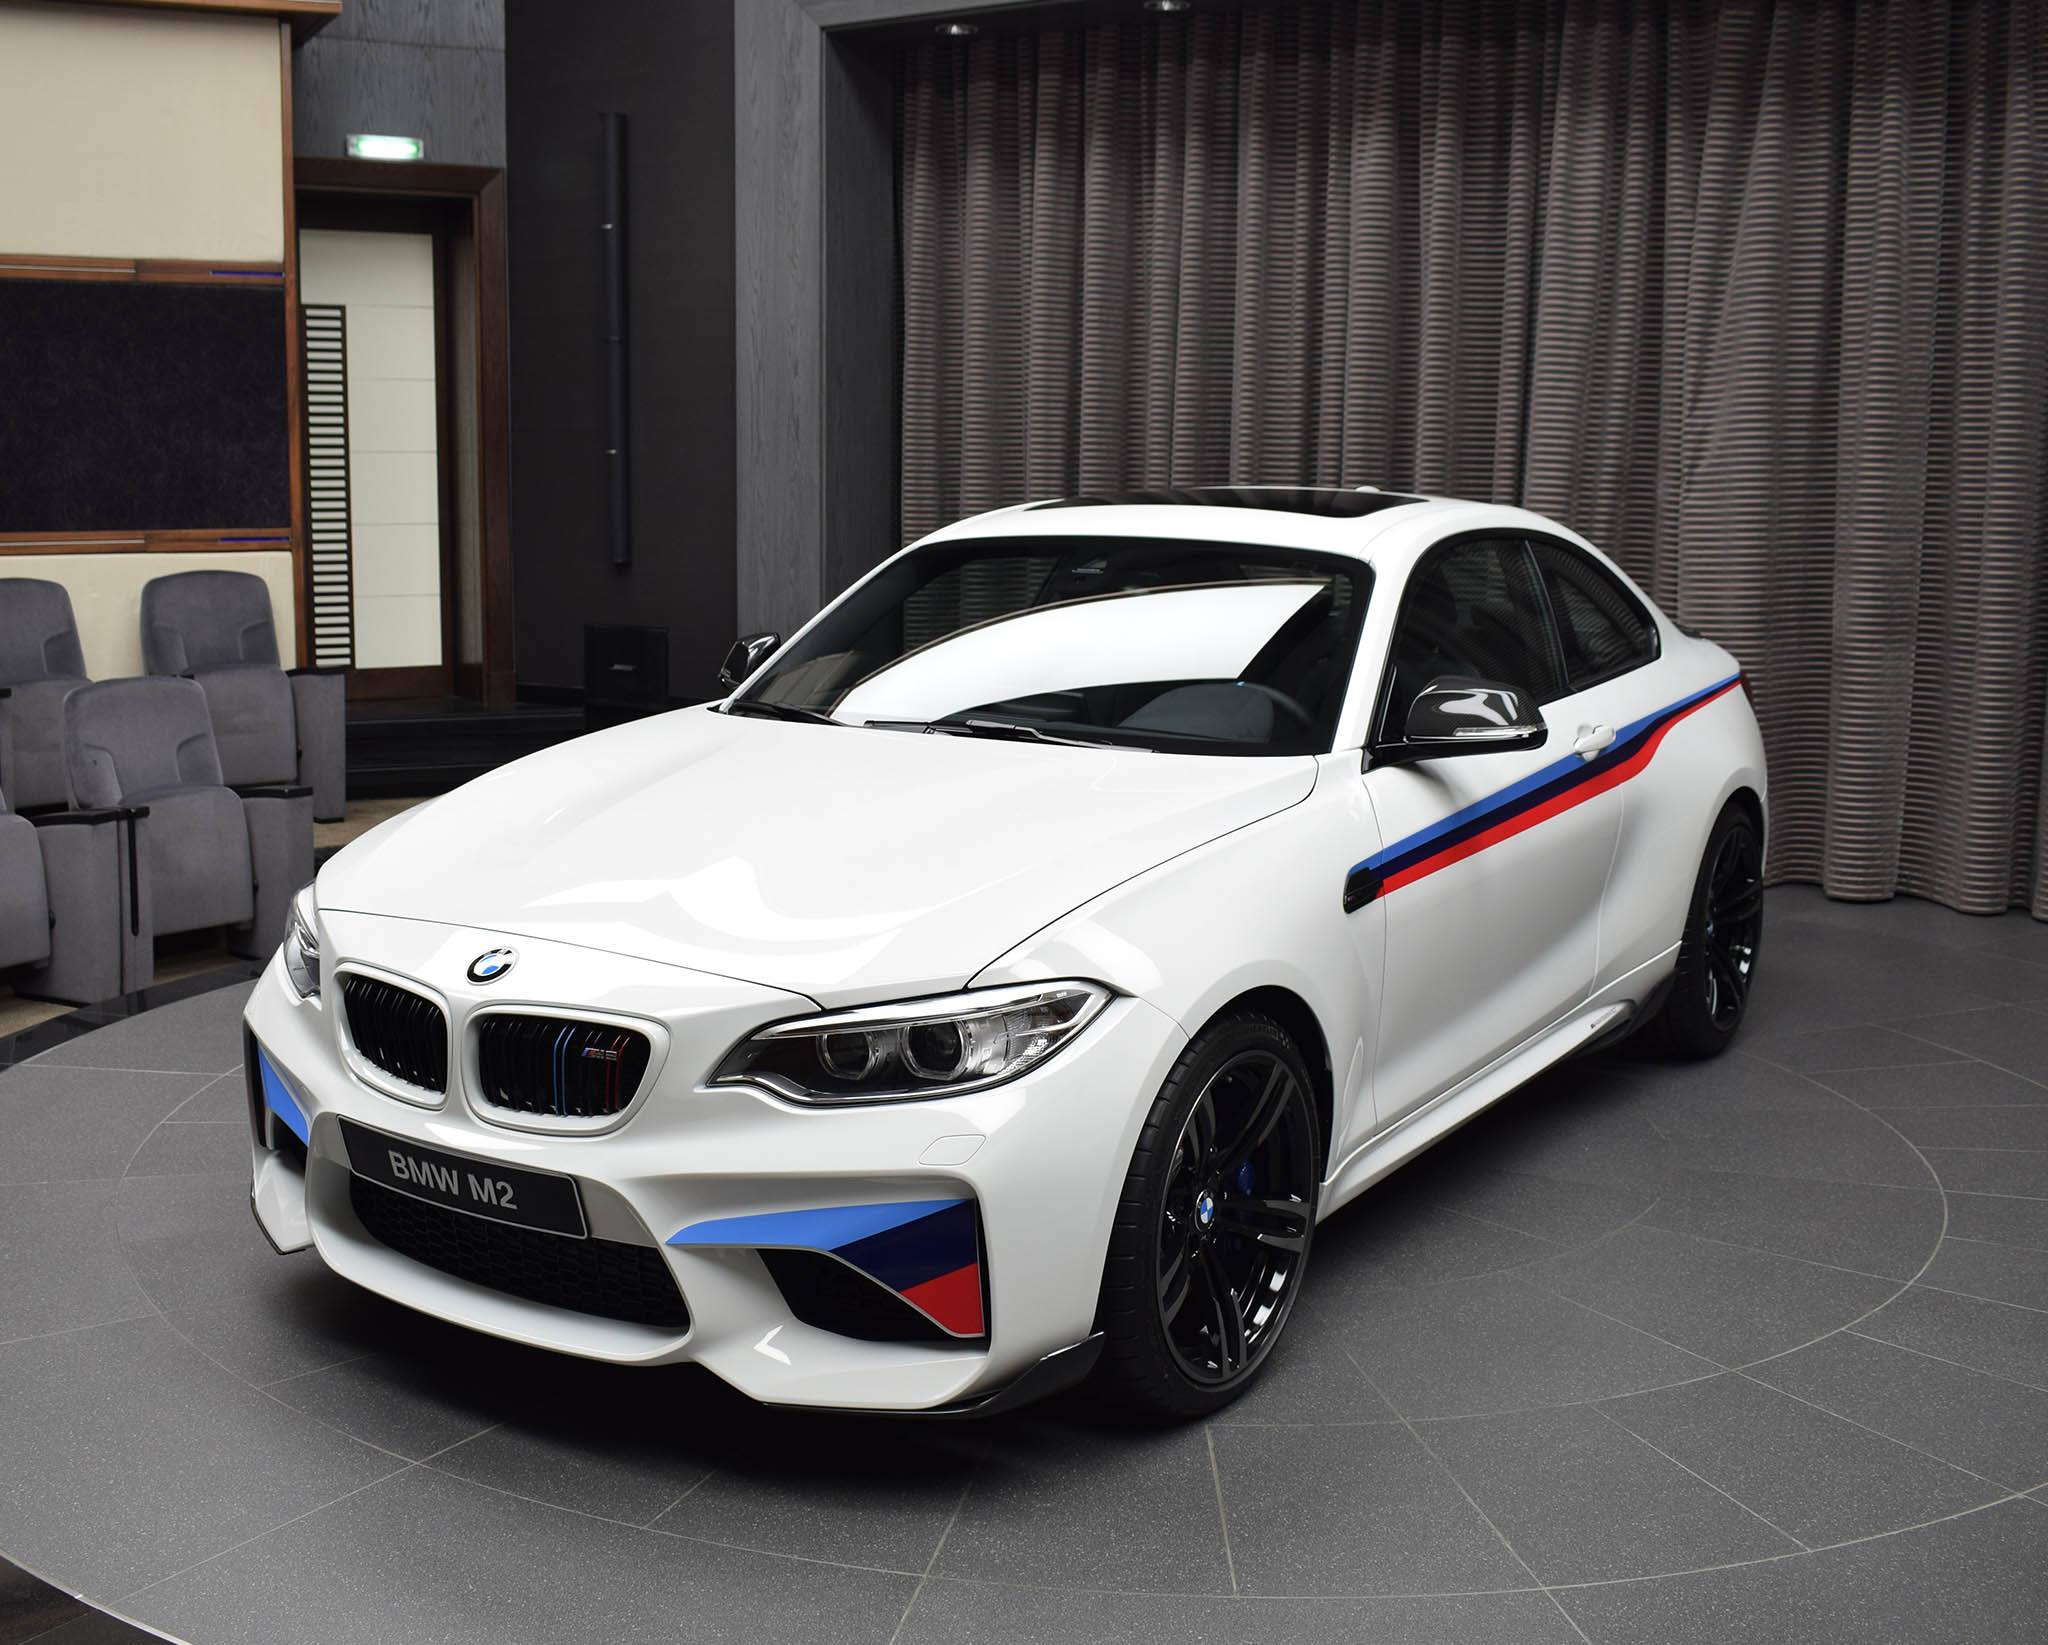 BMW M2 with M Performance parts (17)